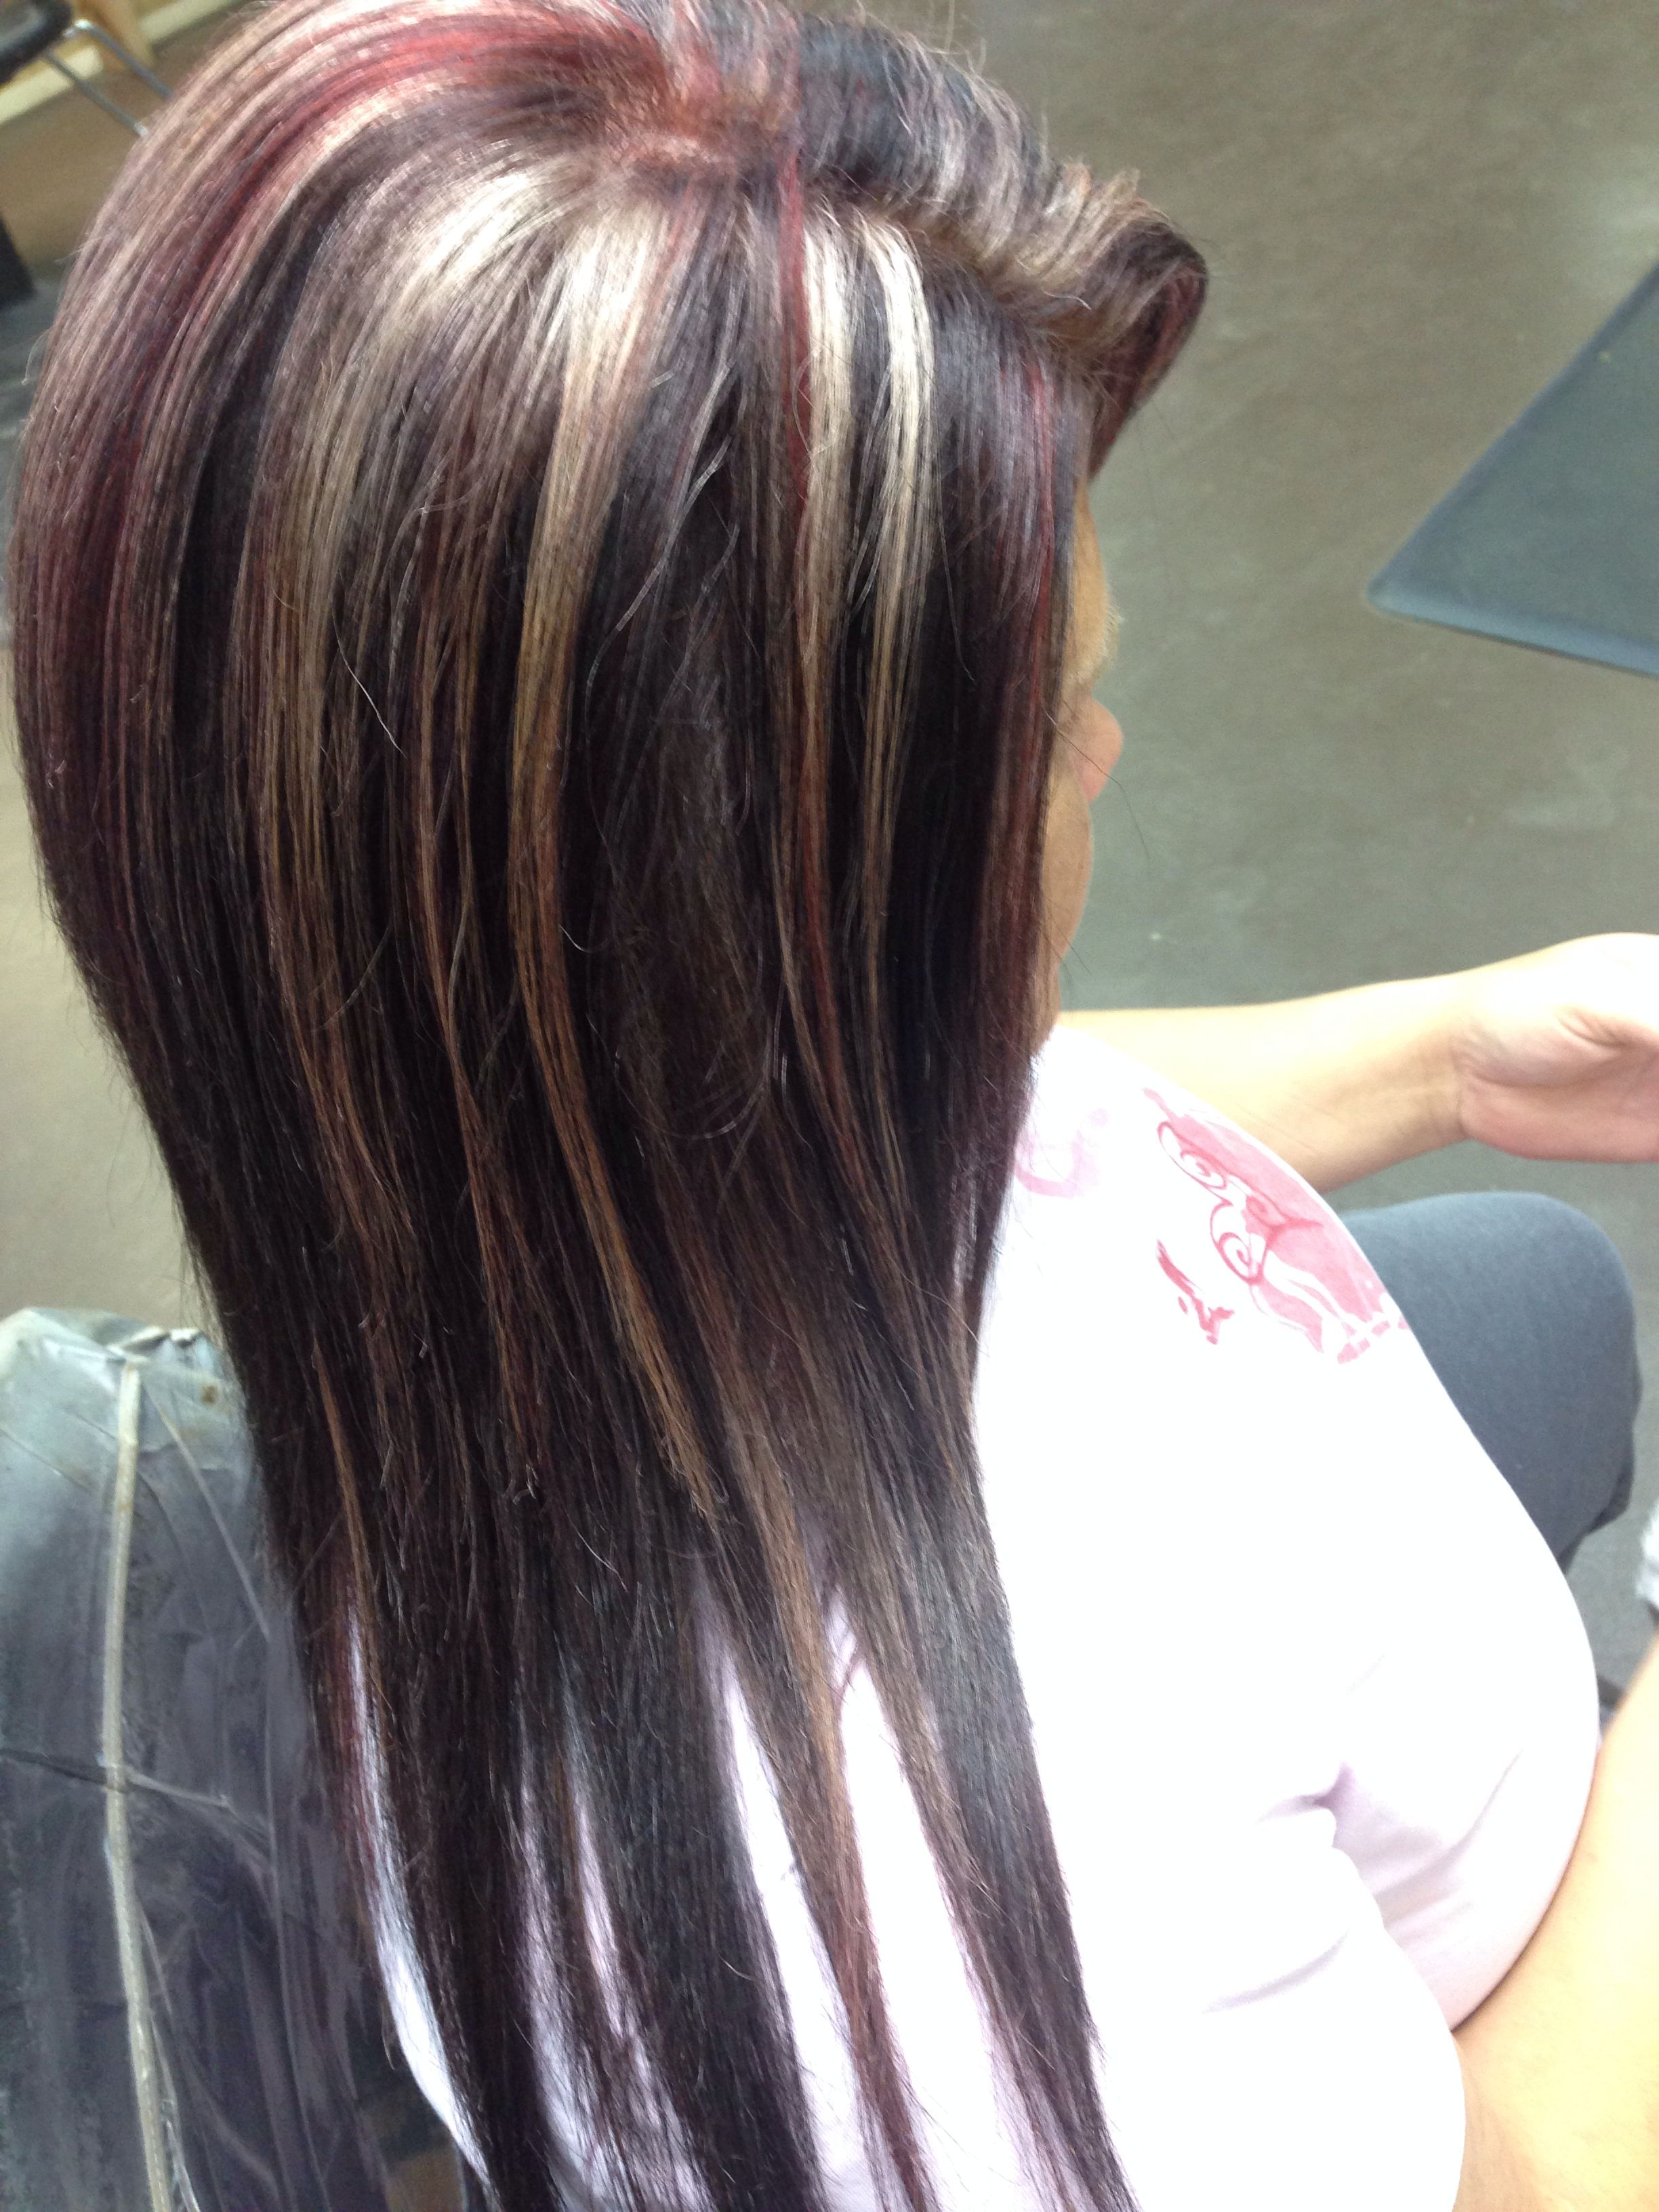 Blonde Highlights Red Lowlights Brown Base Hair By Megan